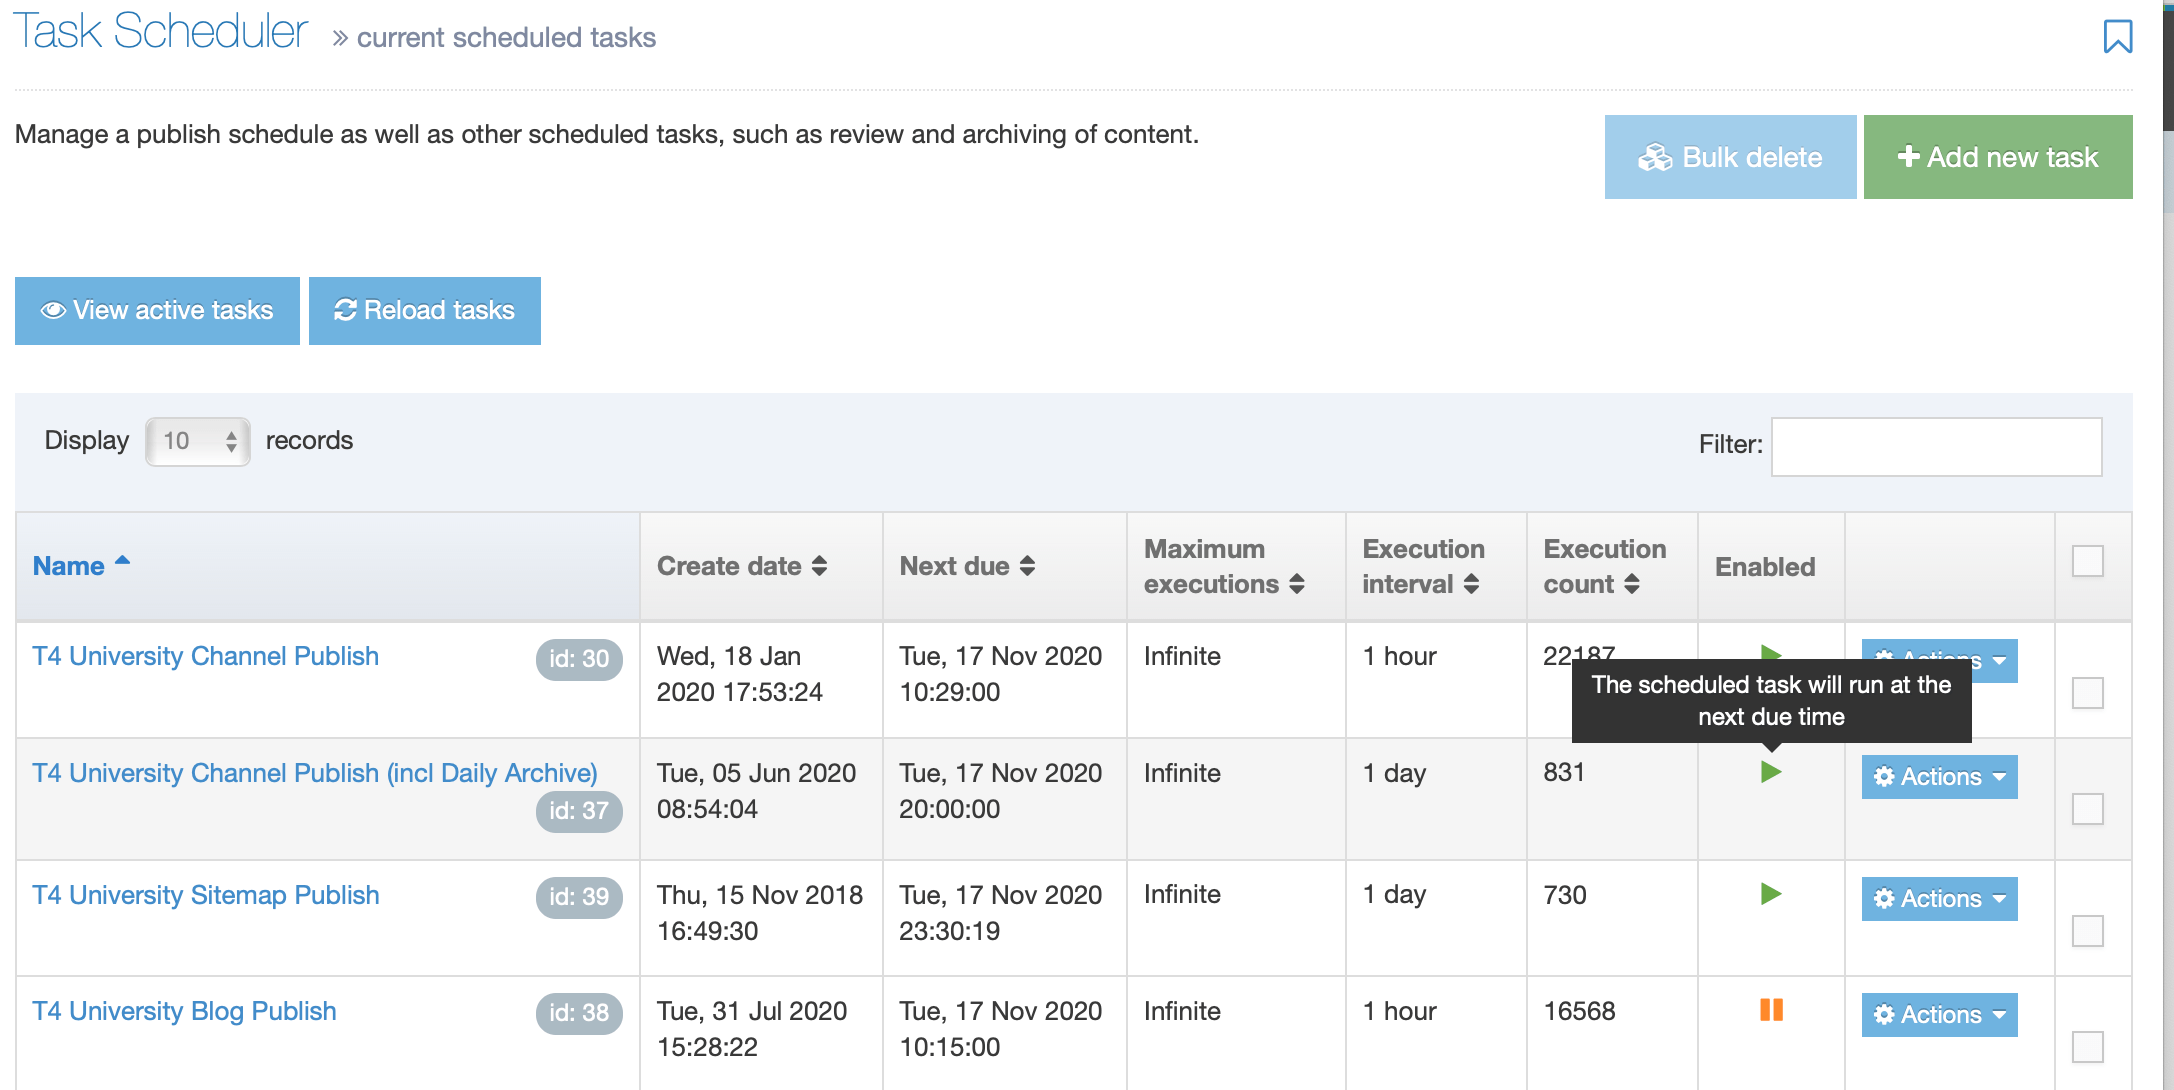 Screenshot of the Task Scheduler Listing